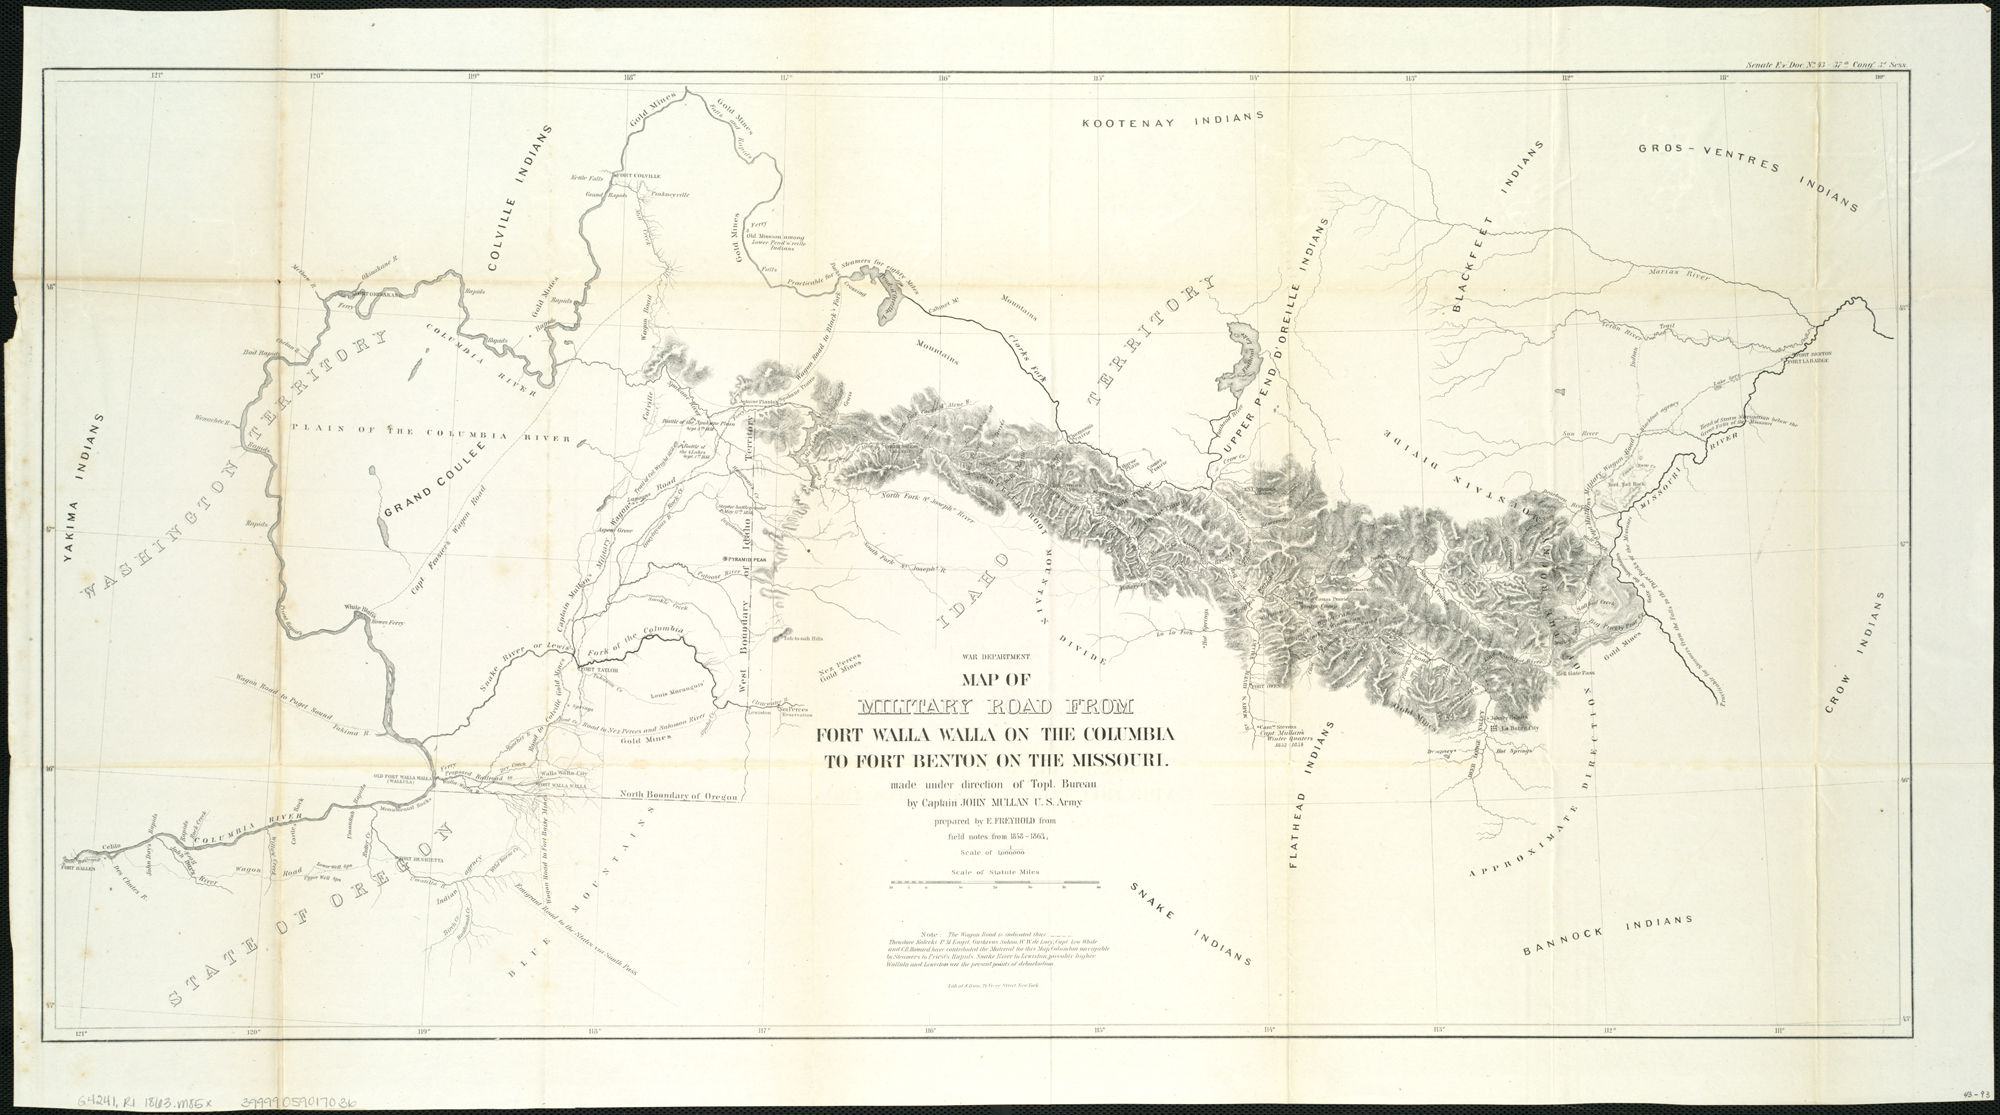 File Map of military road from Fort Walla Walla on the Columbia to